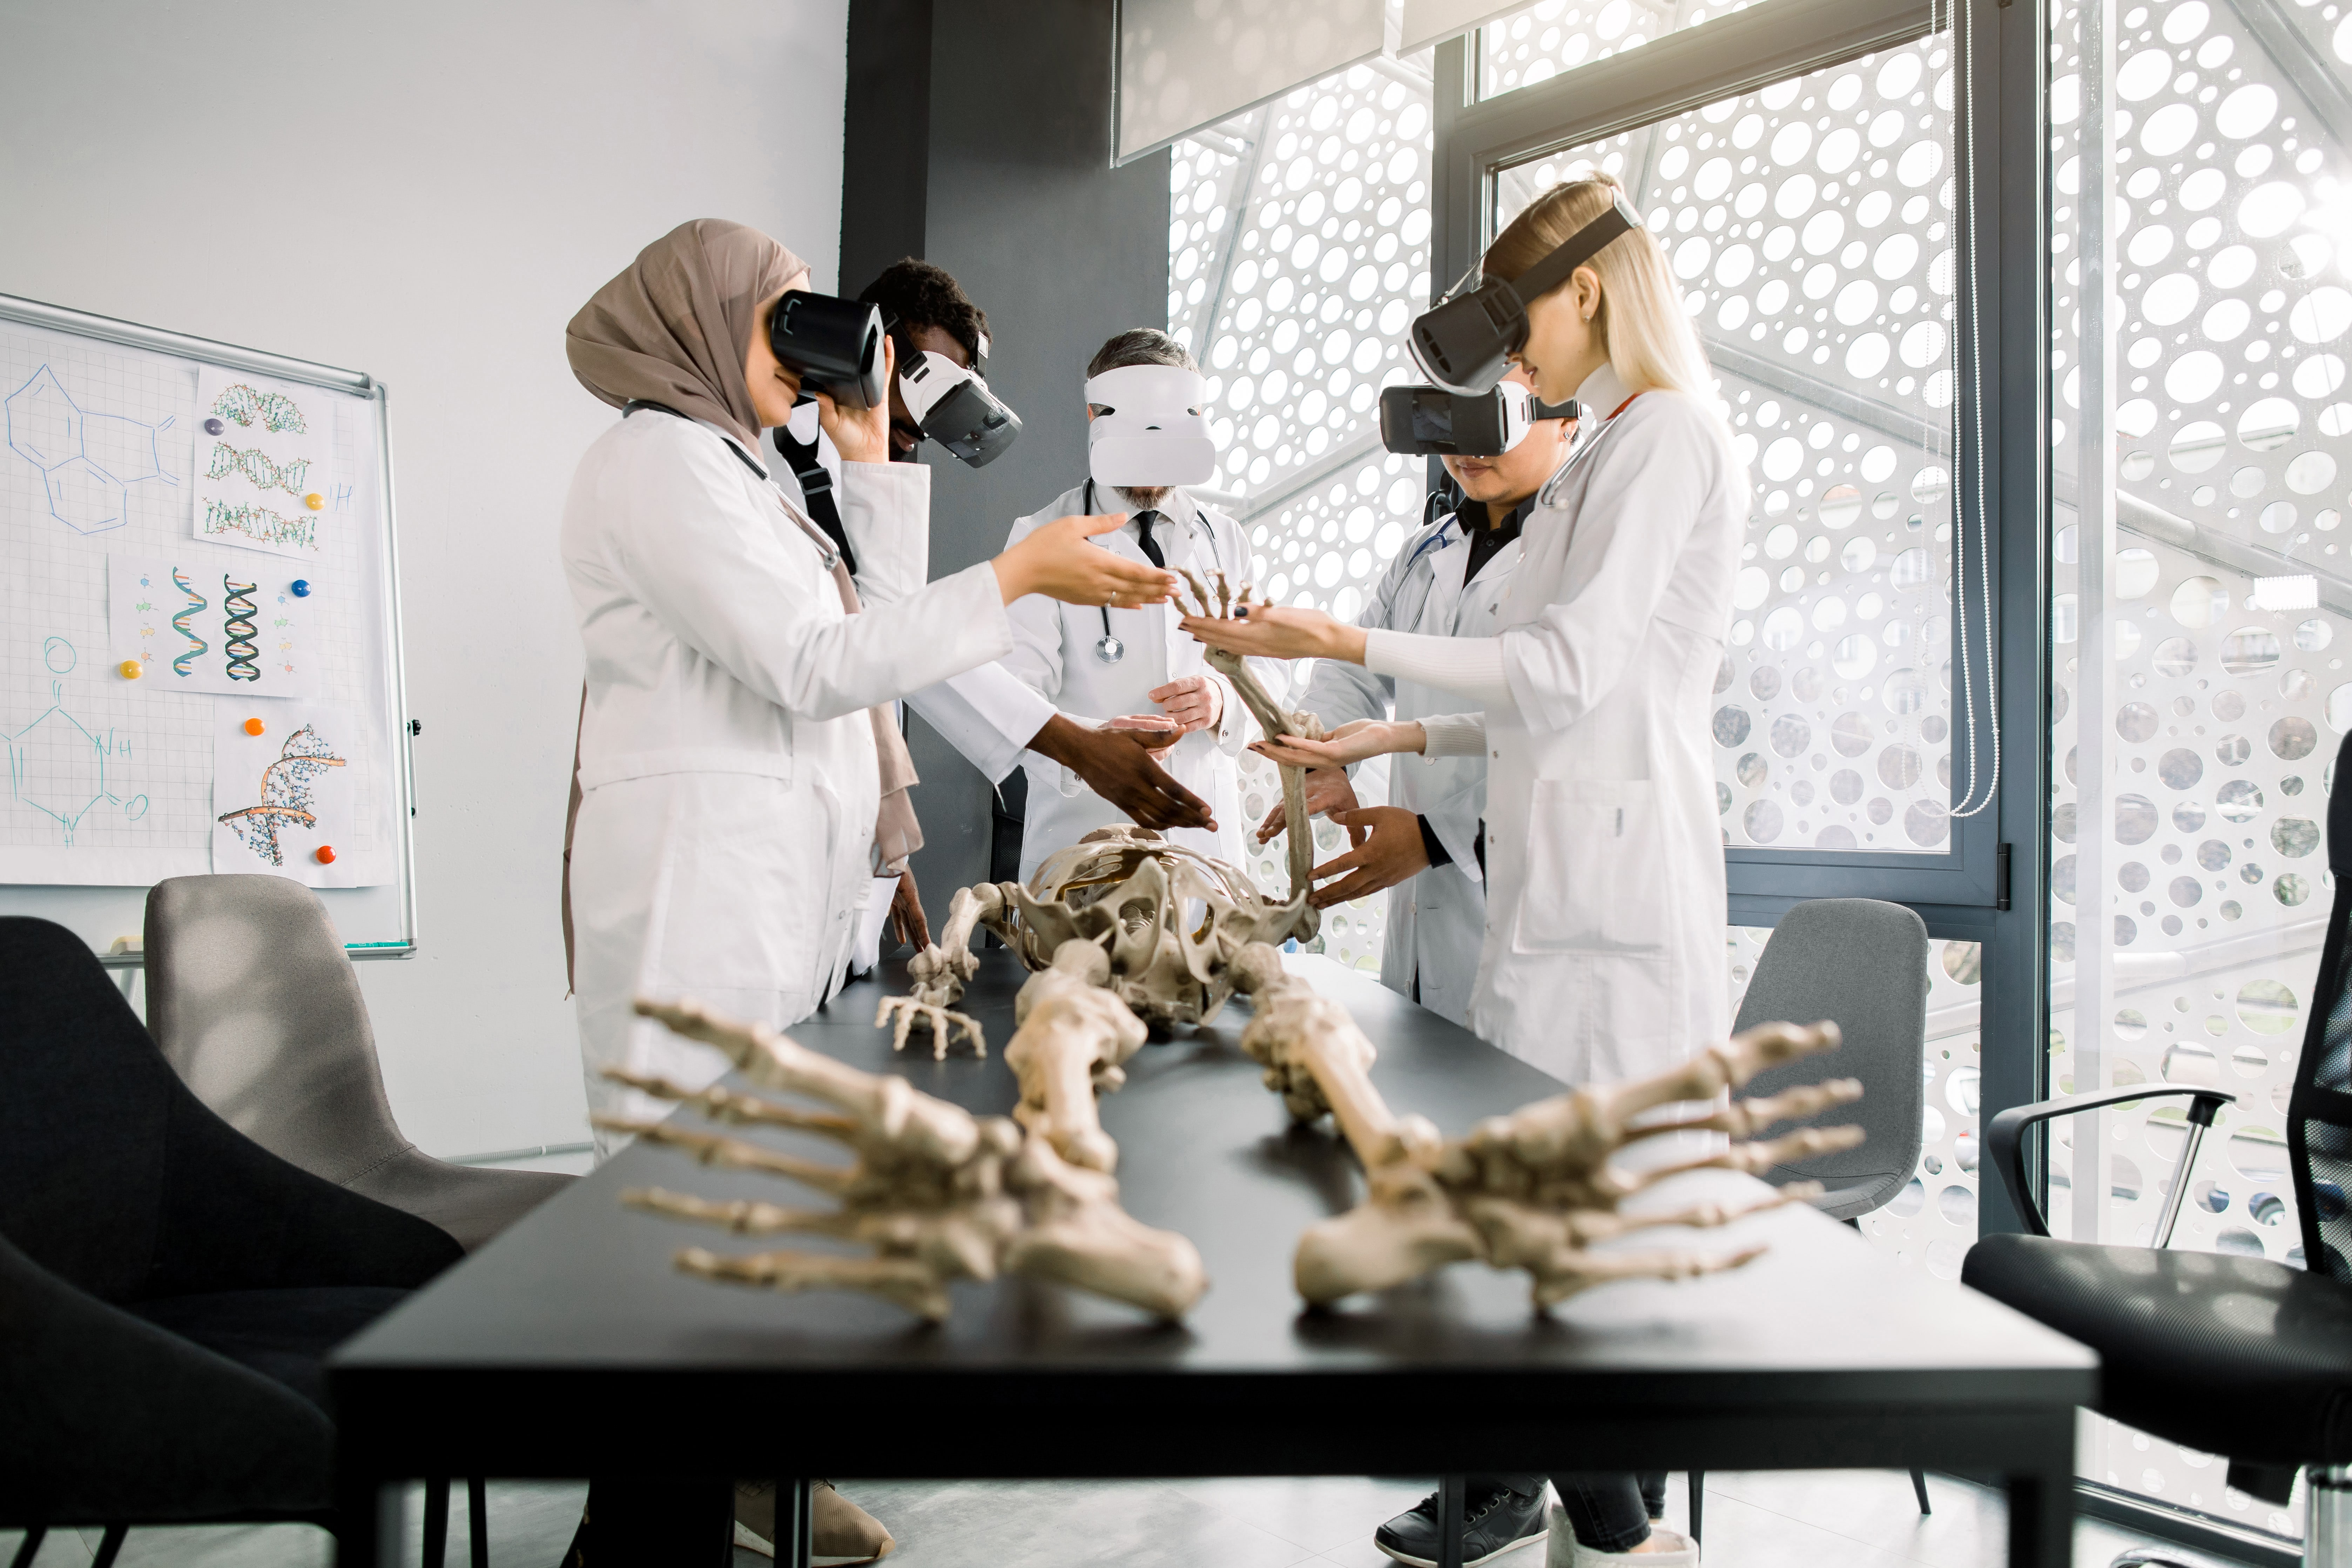 Male professor teacher using Virtual Reality Glasses to teach skeleton anatomy for multiethnic students in class. Education, VR, Tutoring, New Technologies and Teaching Methods concept, virtual reality for training